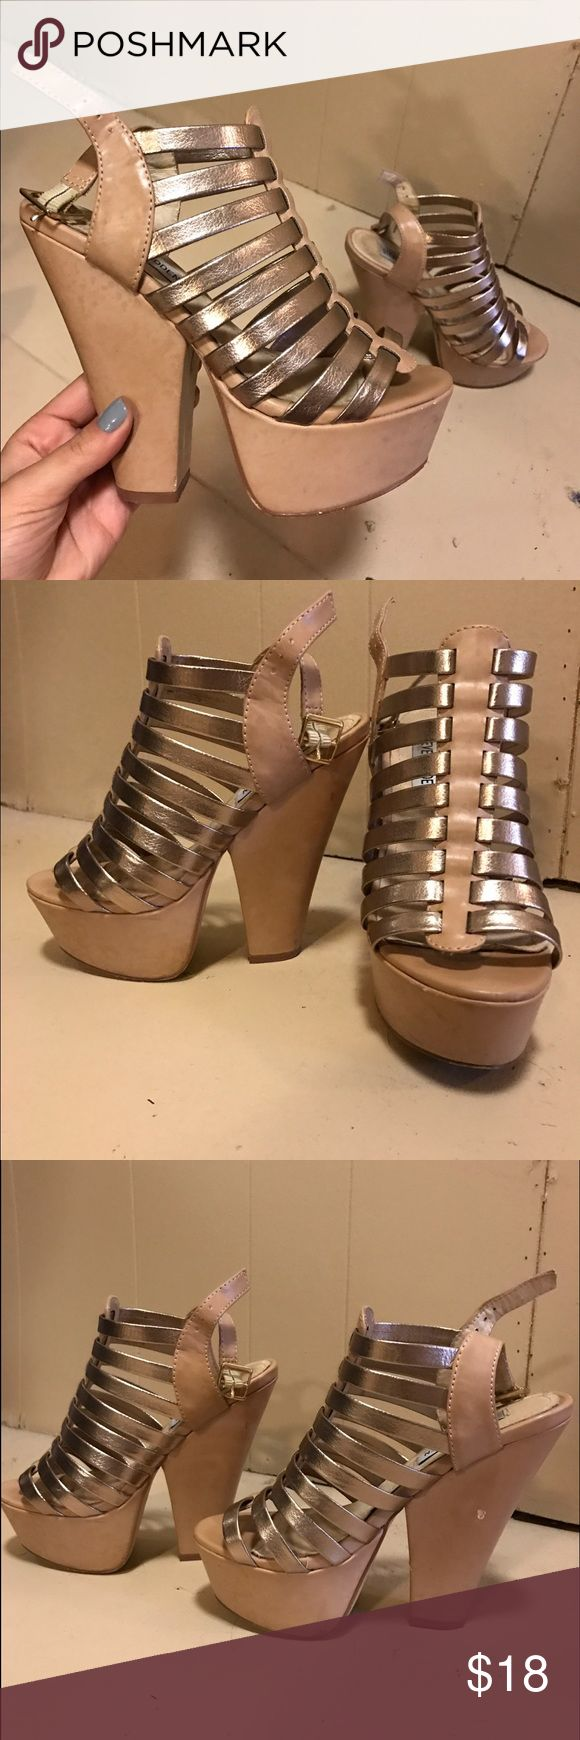 Steve Madden tan and gold wedged heels Super classy tan and gold heels by Steve Madden. Chunky wedge makes them easy to walk in. Worn a handful of times and the wear is shown with some scuffs and bruises. Still great shoes! Steve Madden Shoes Heels